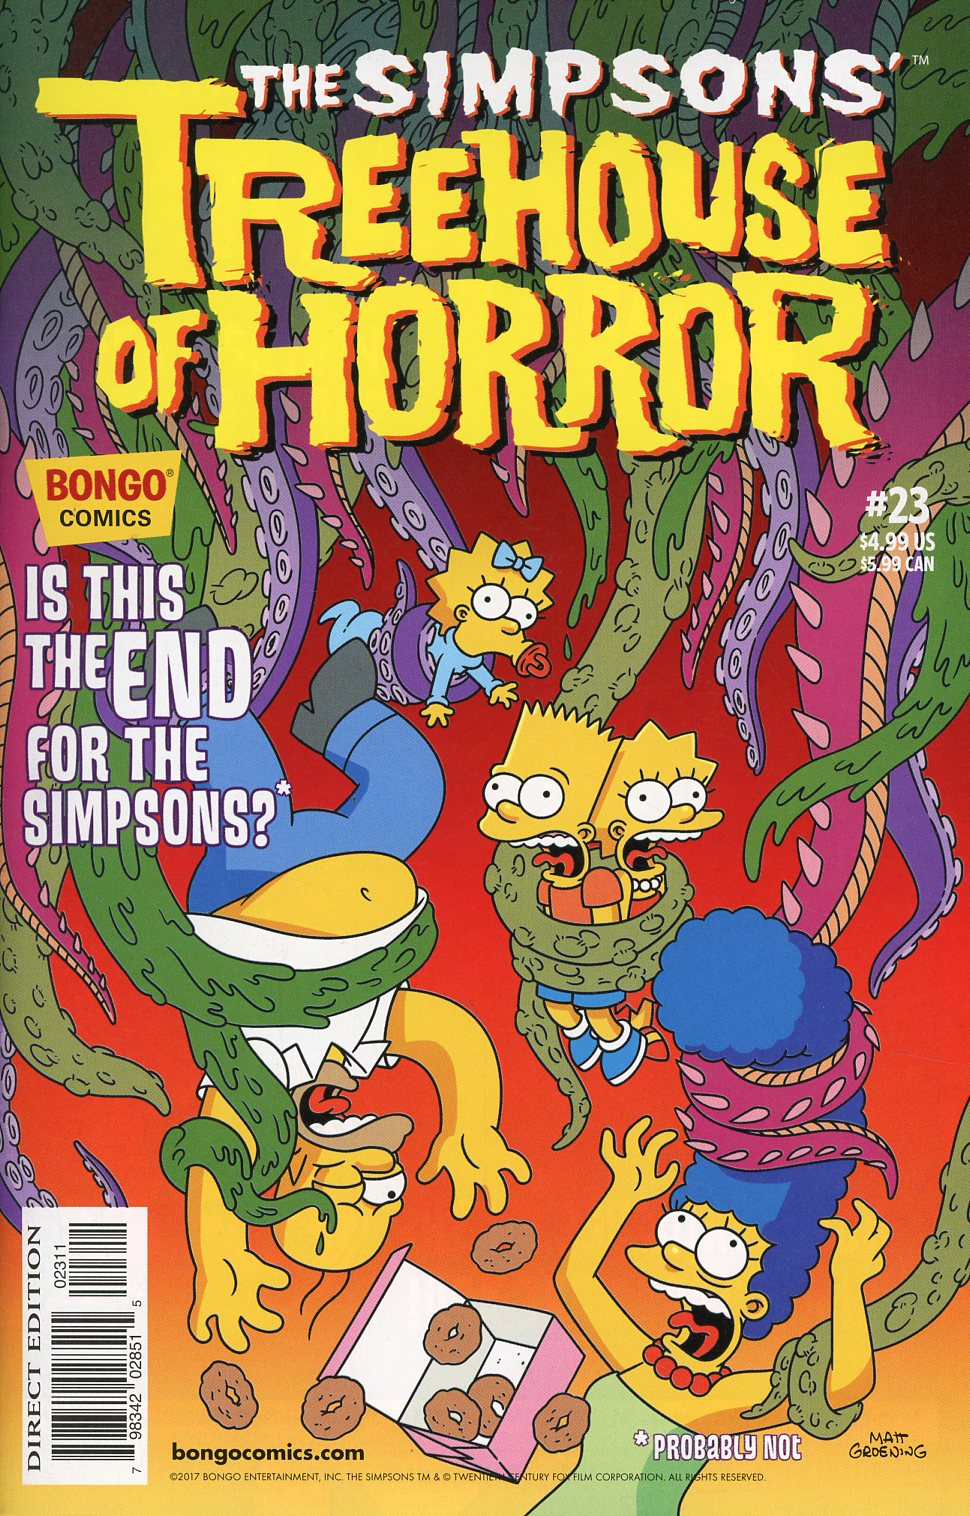 Simpsons Treehouse Of Horror #23